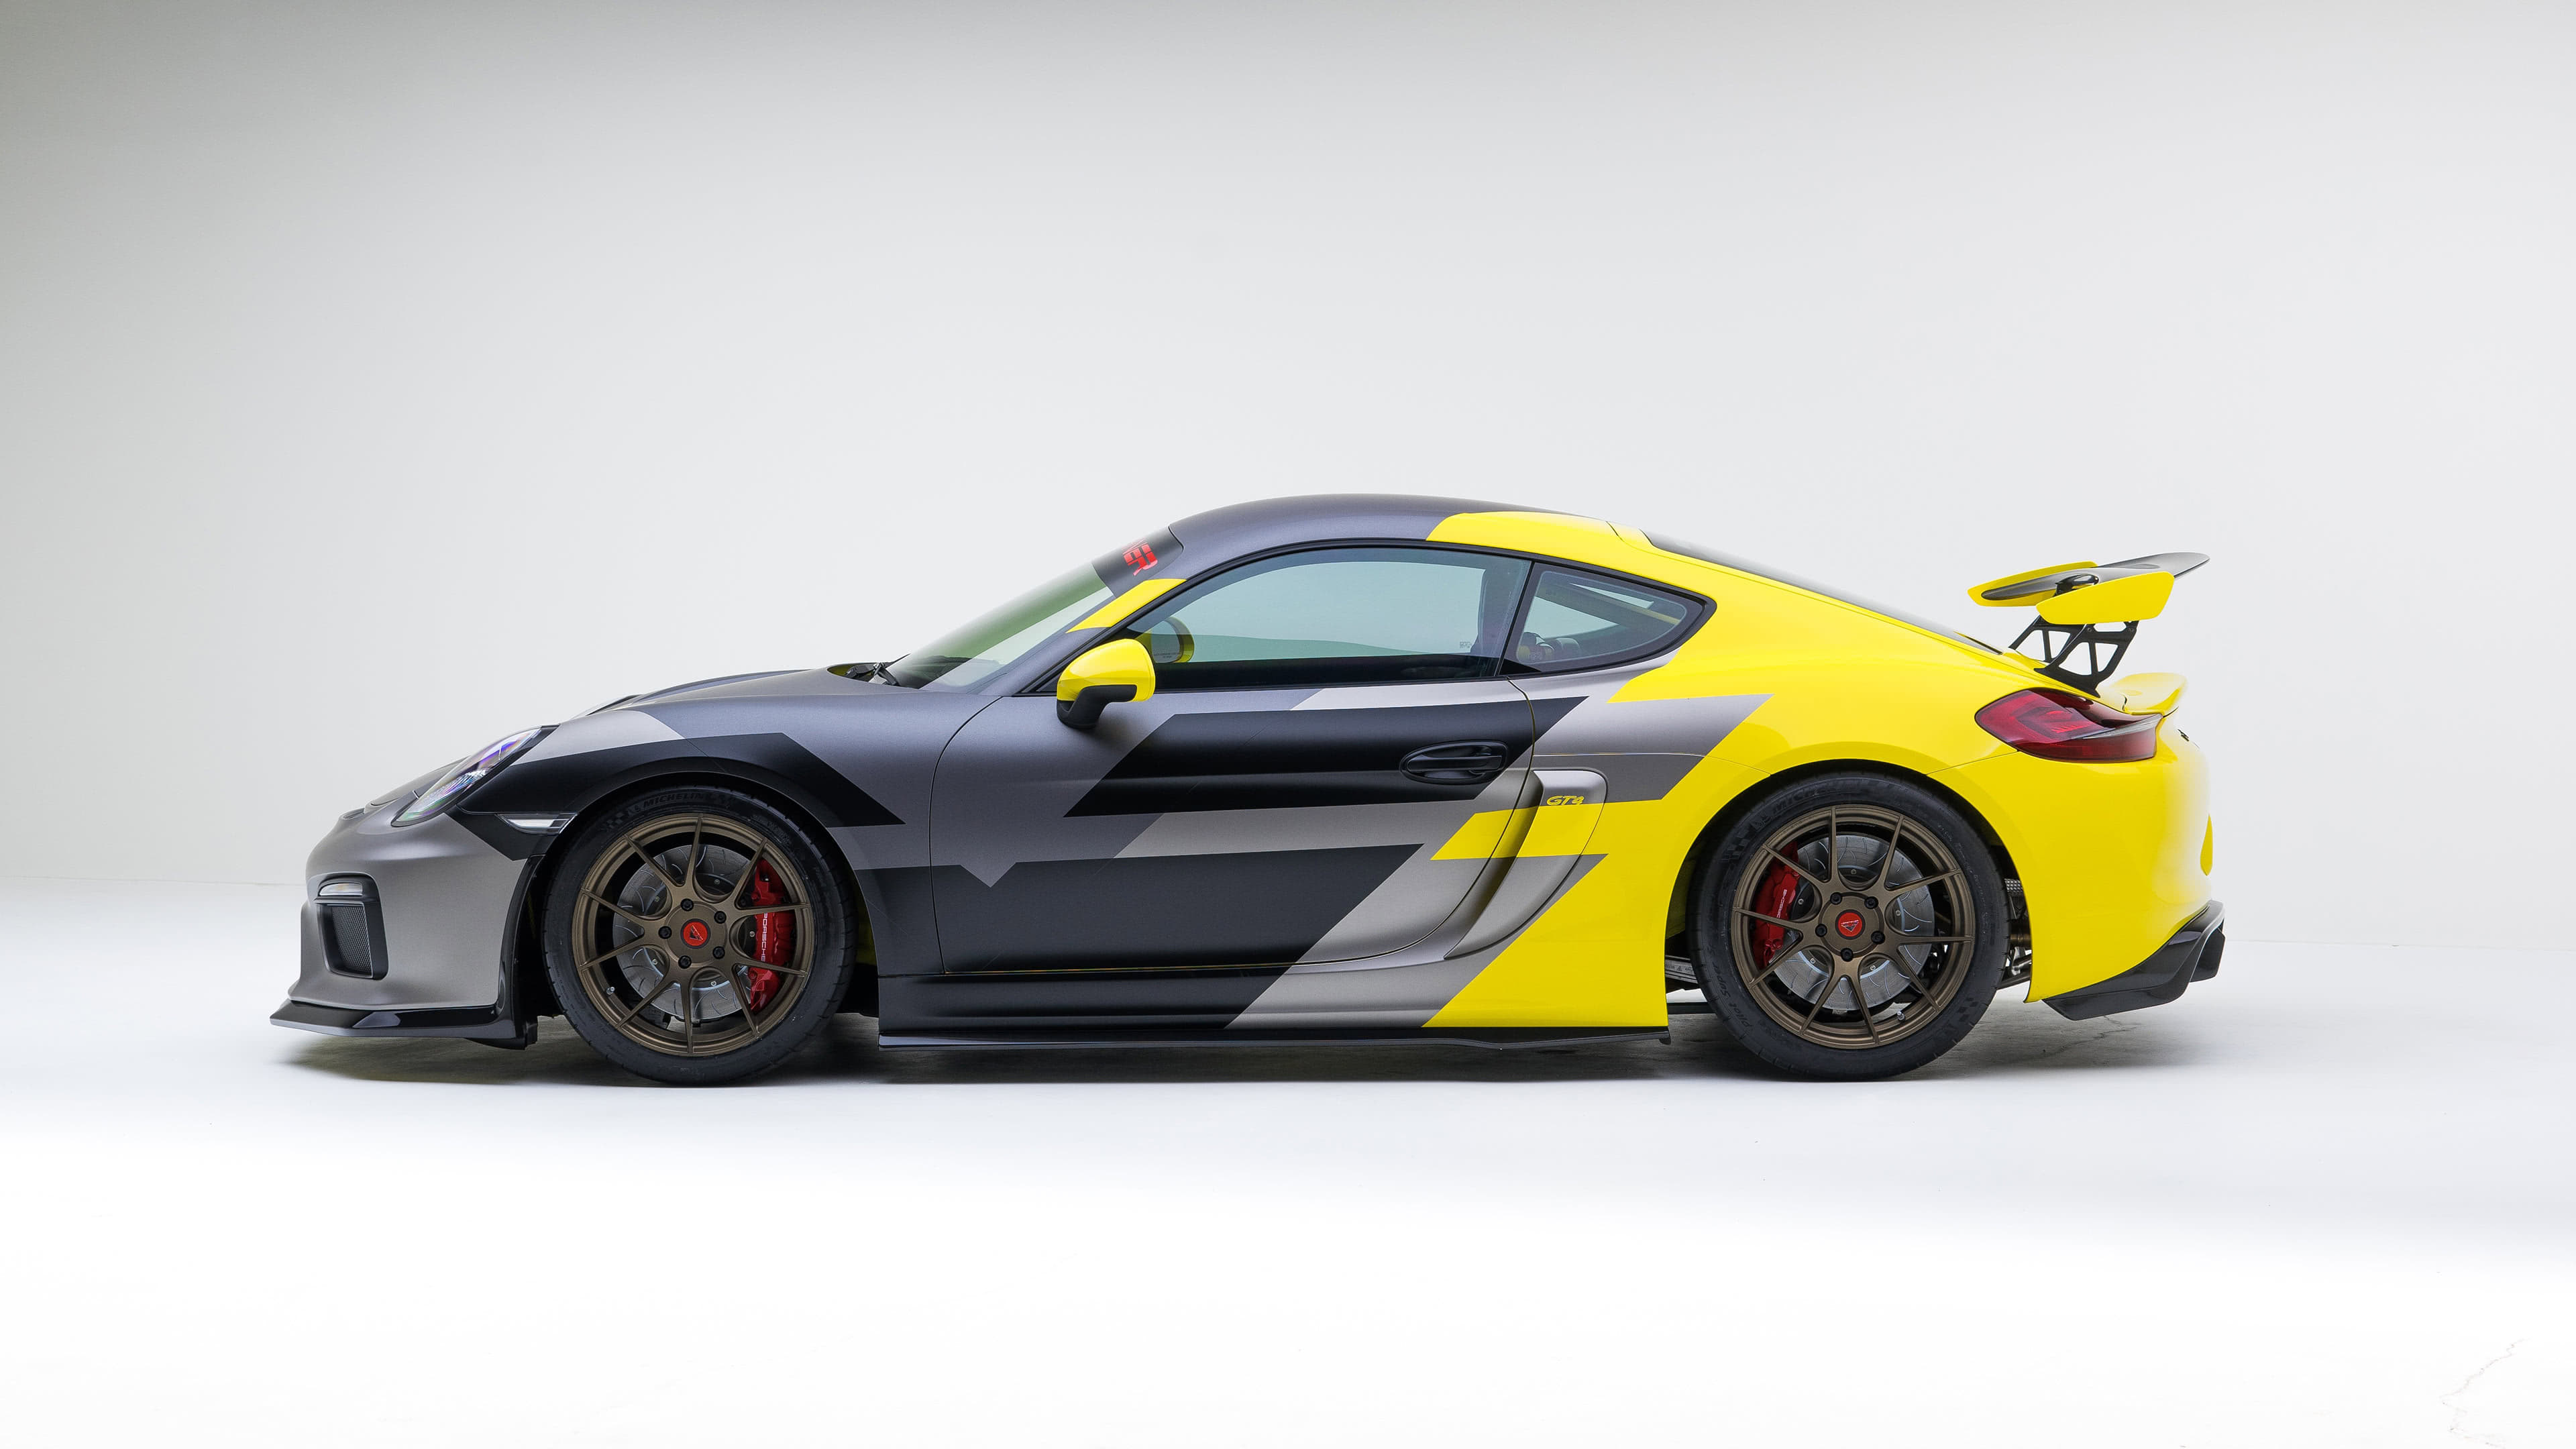 Porsche Cayman GT4 Silk Poster//Wallpaper 24 X 13 inches